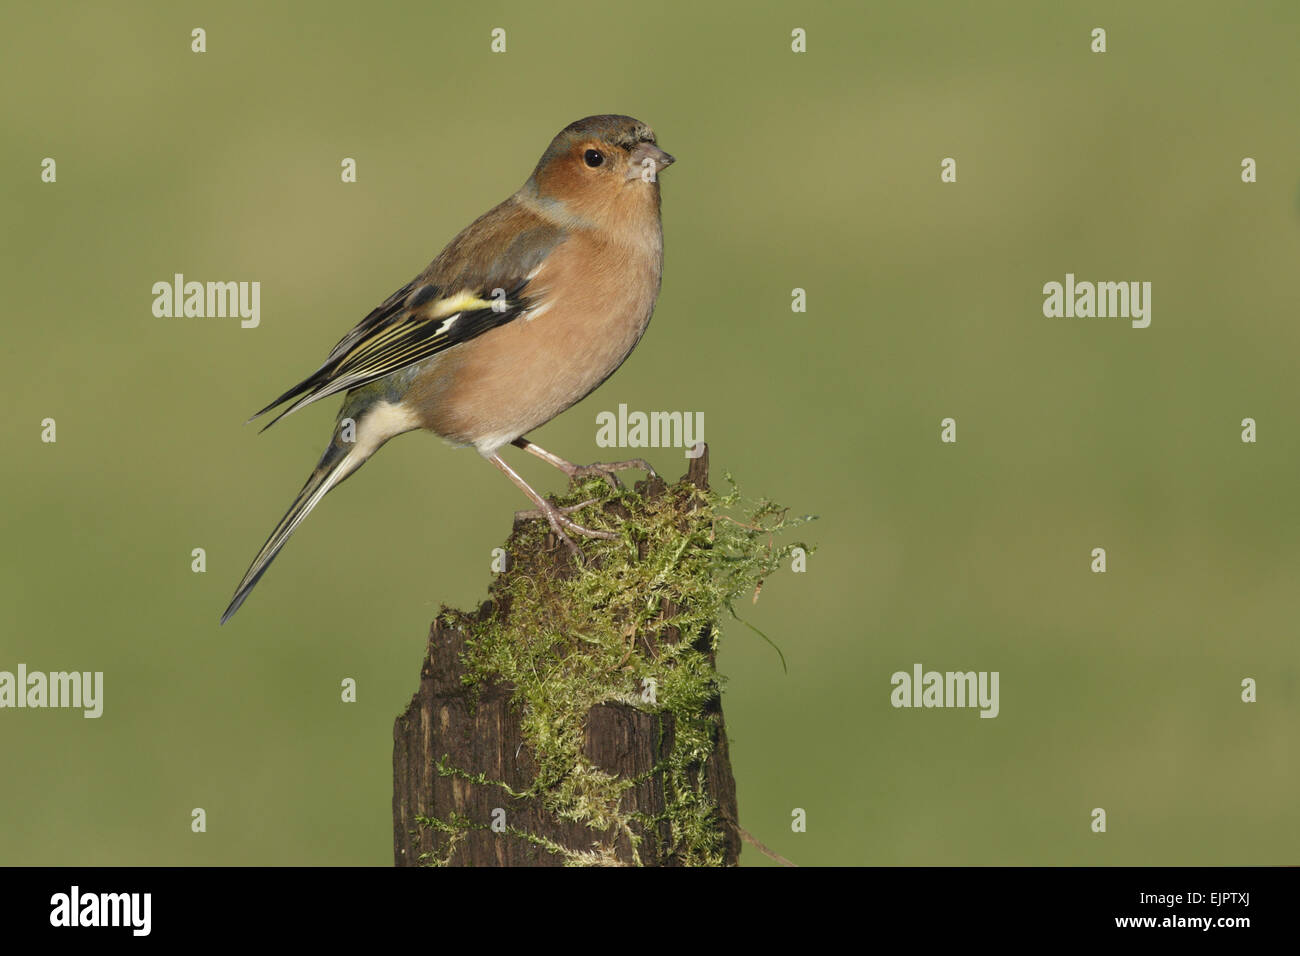 Common Chaffinch (Fringilla coelebs) adult male, perched on mossy stump, West Yorkshire, England, December - Stock Image